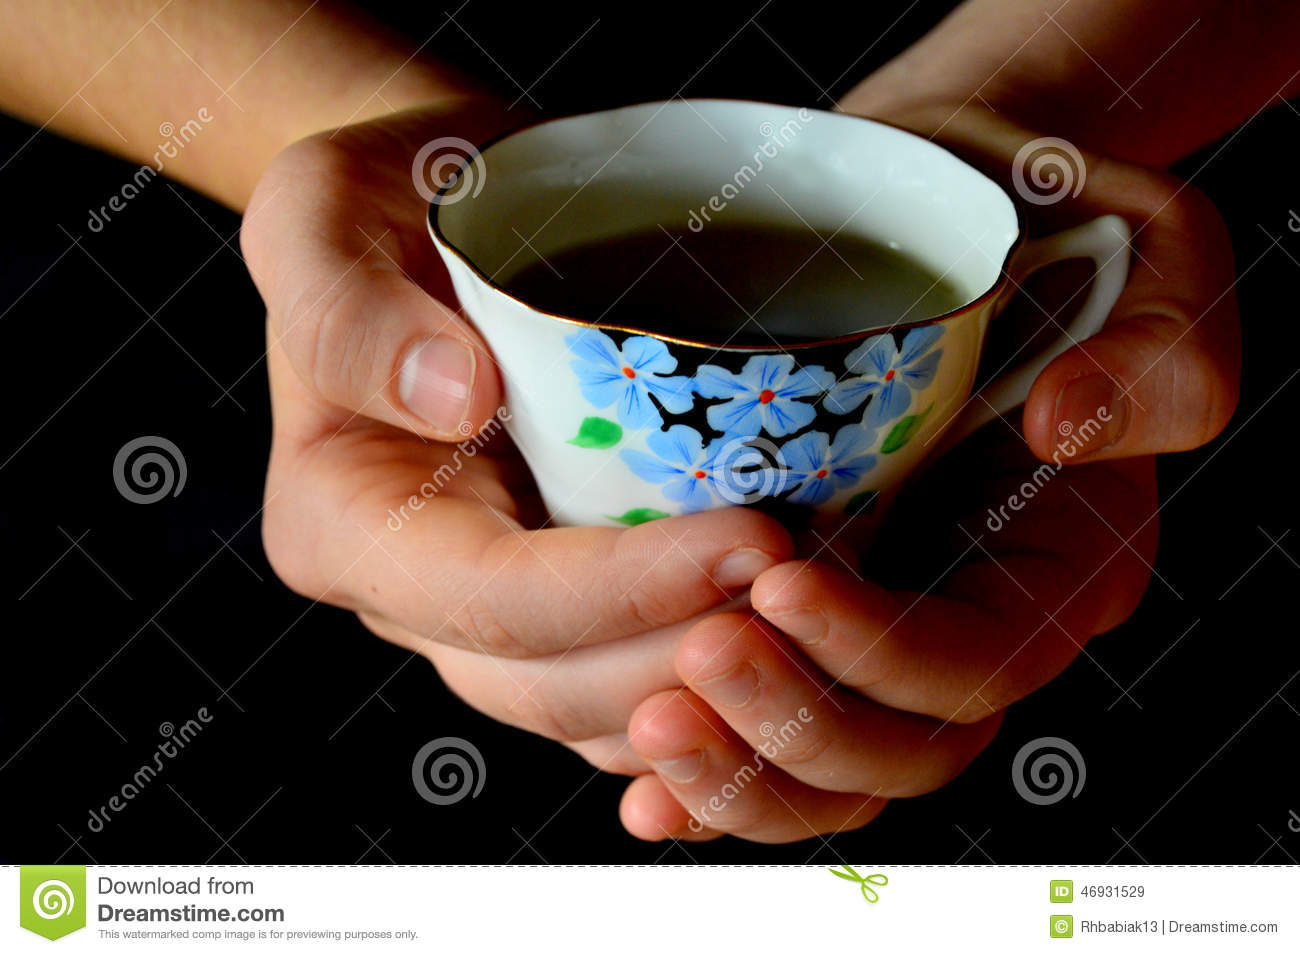 Hands Holding Cup of Tea